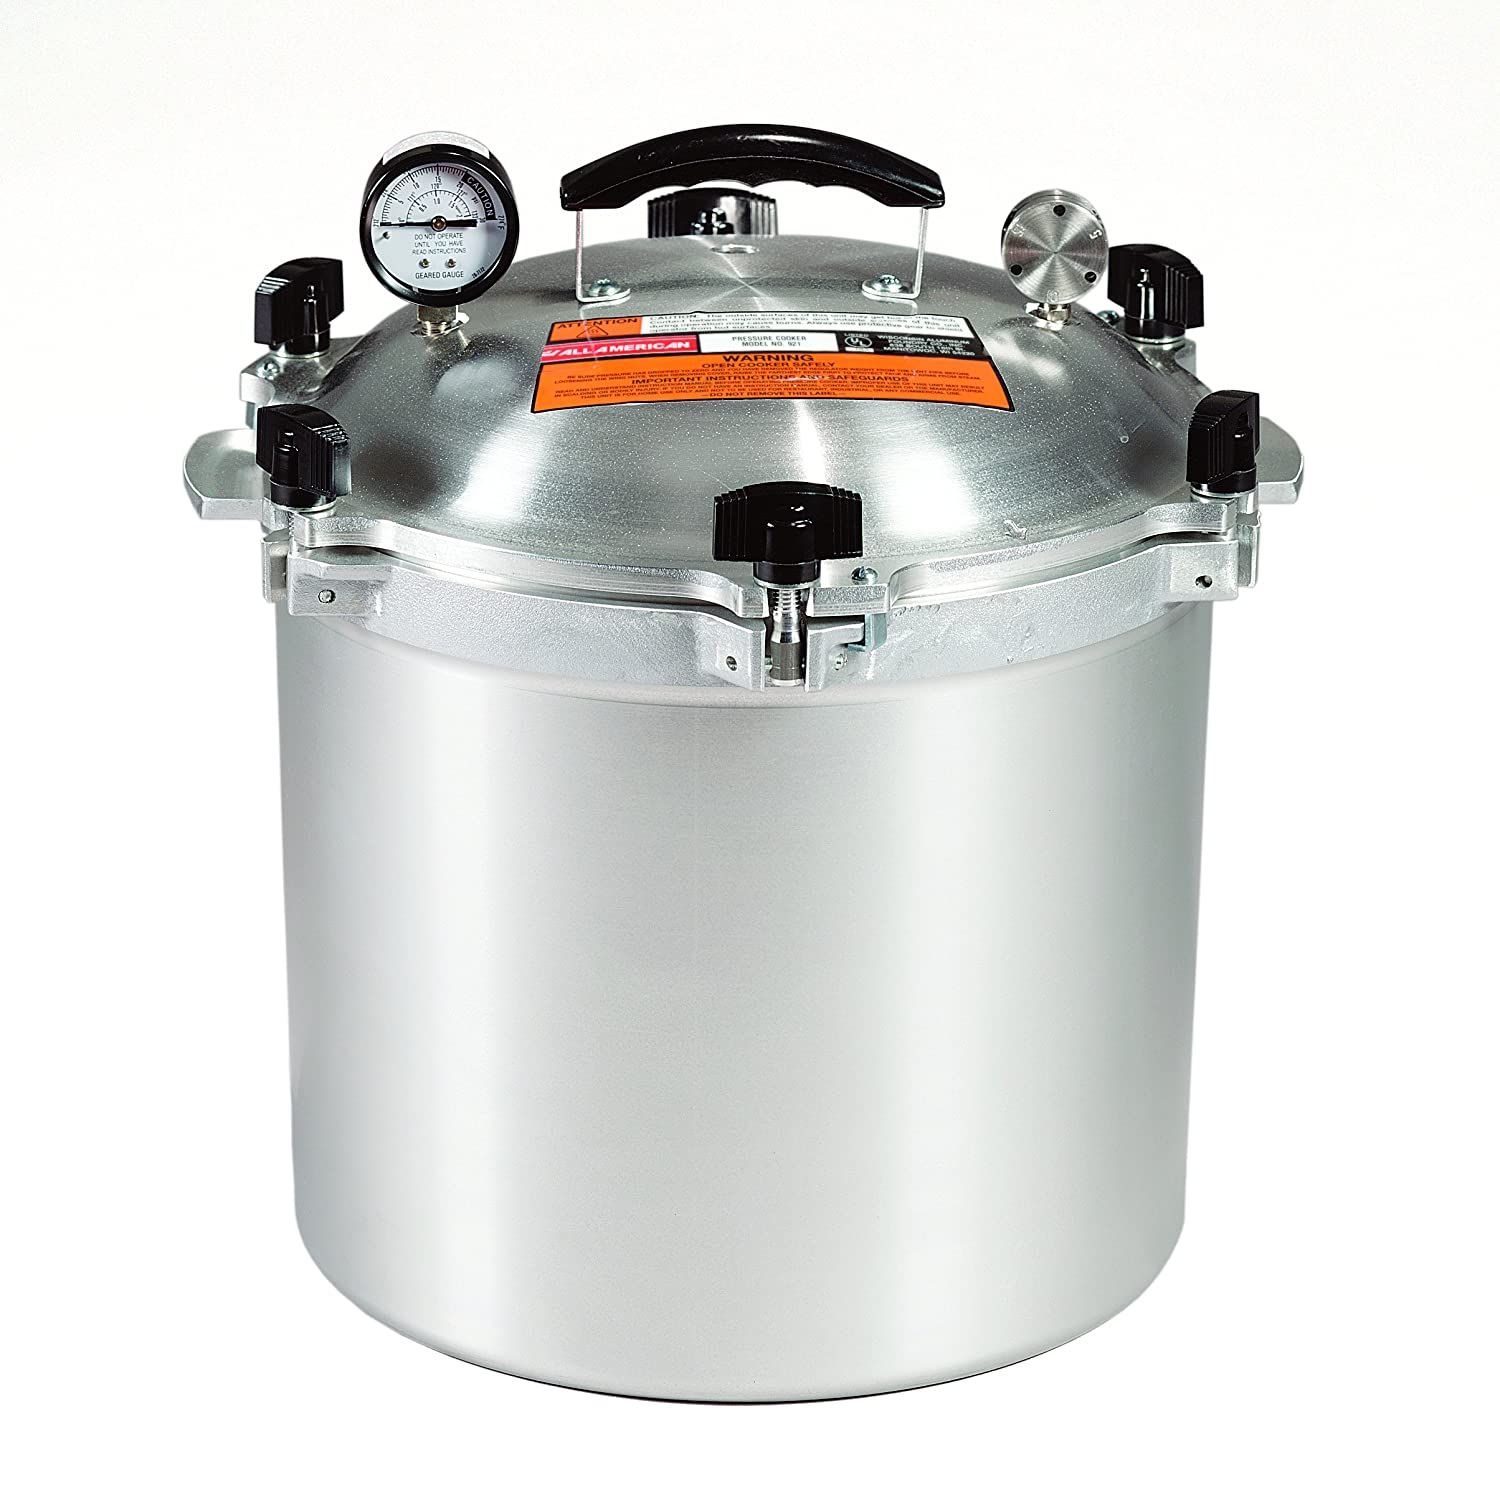 Electric Pressure Cooker For Canning ~ Best pressure canner reviews for must read